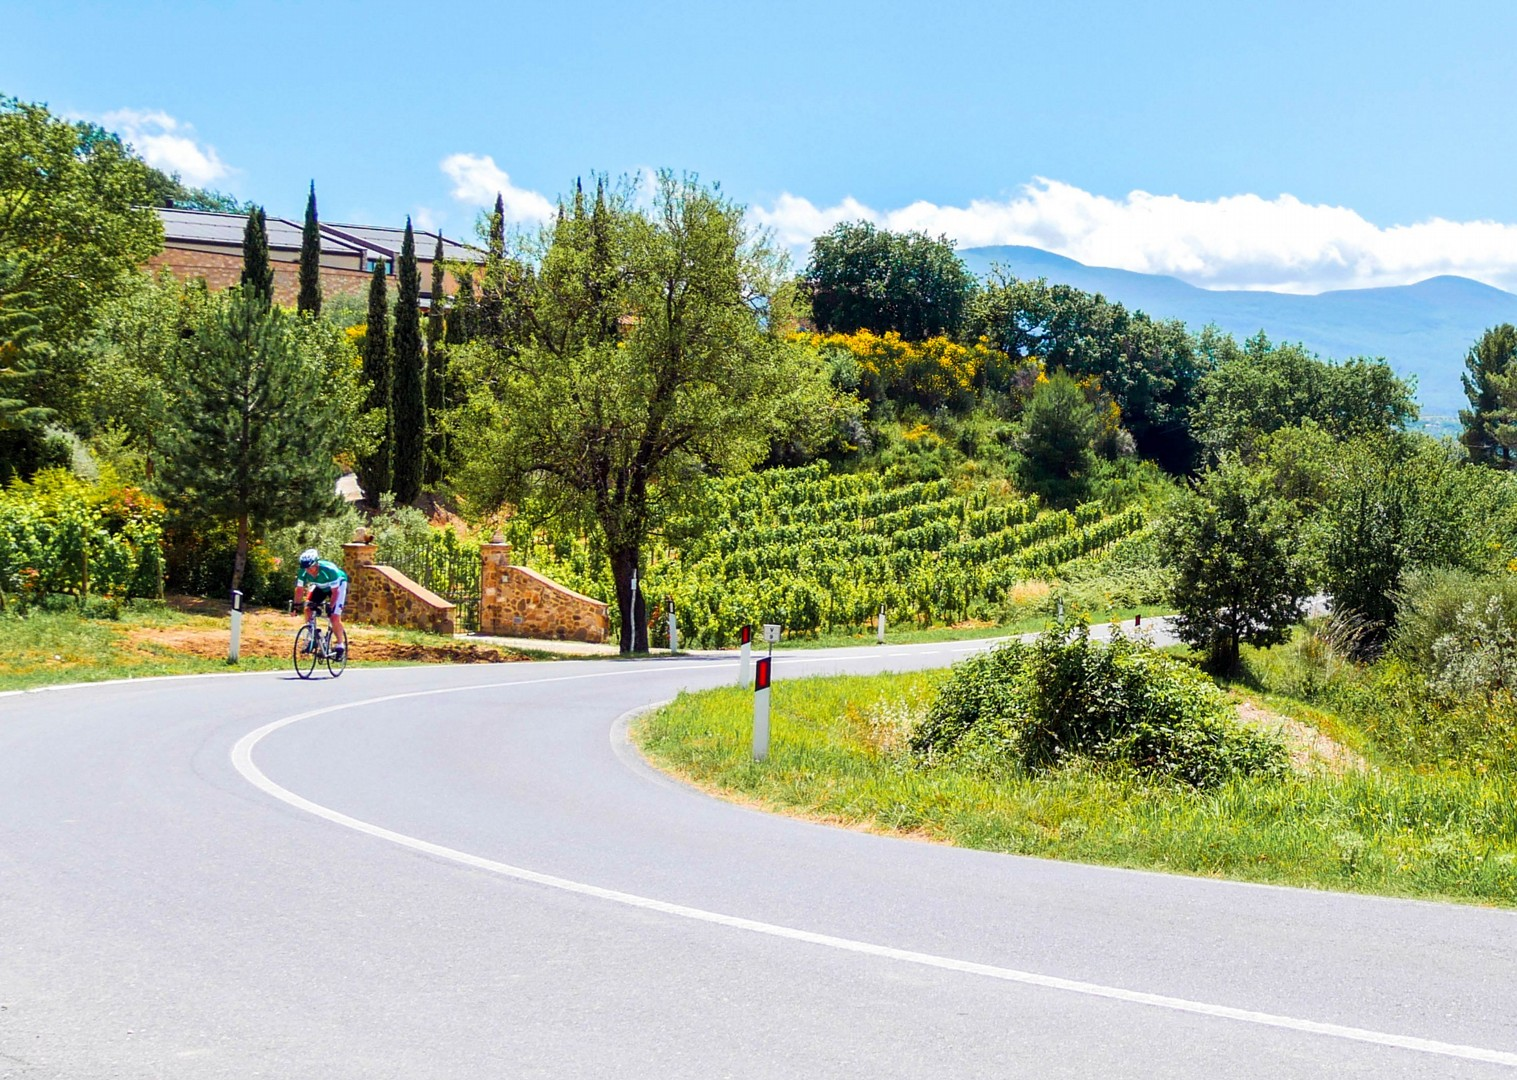 Ian-2.jpg - Italy - Tuscany - Giro della Toscana - Guided Road Cycling Holiday - Road Cycling